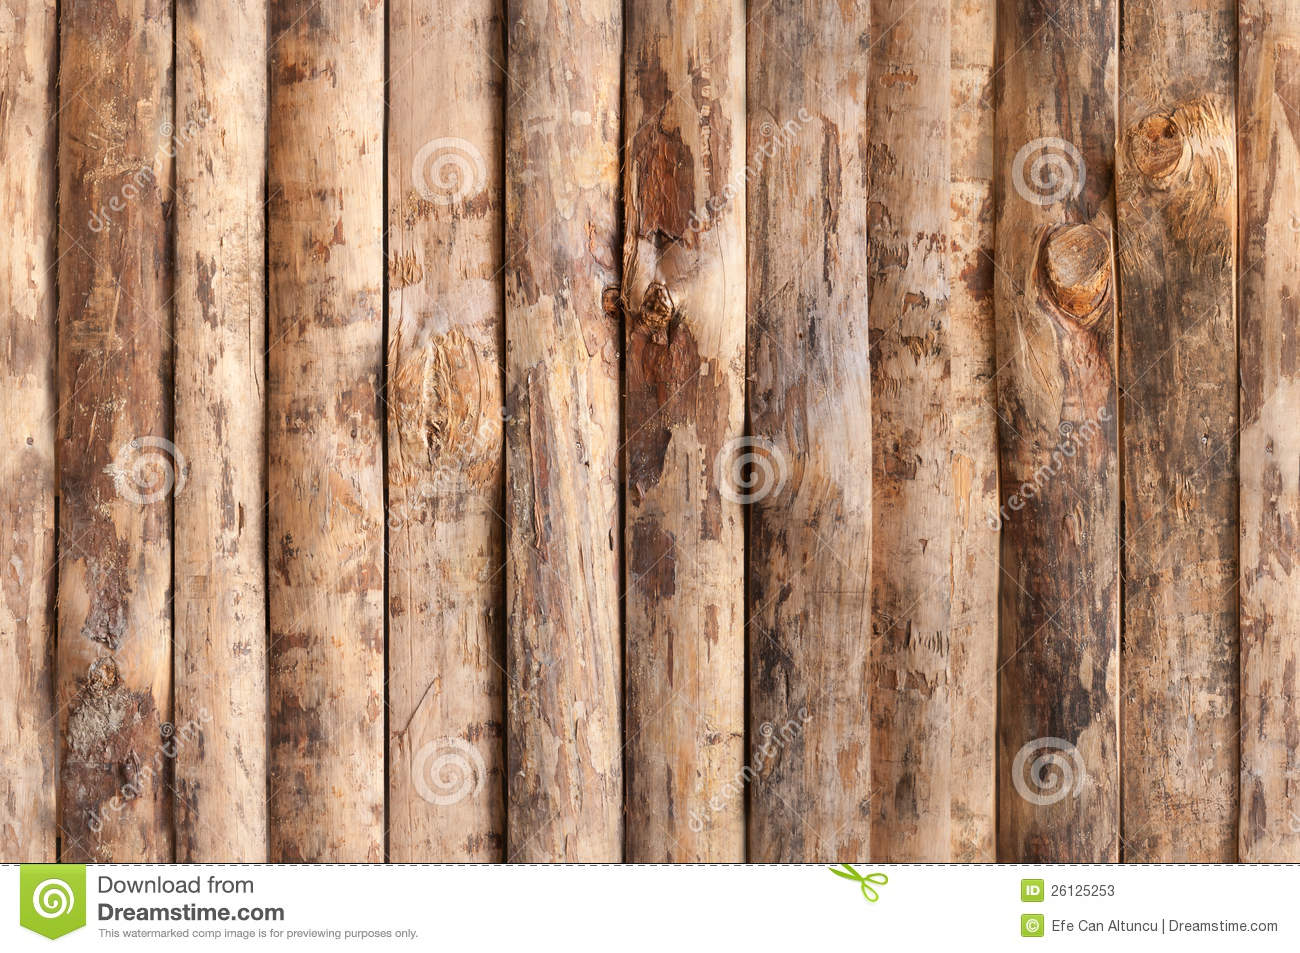 Seamless wooden planks wood stock photos image 26125253 for Raw wood flooring